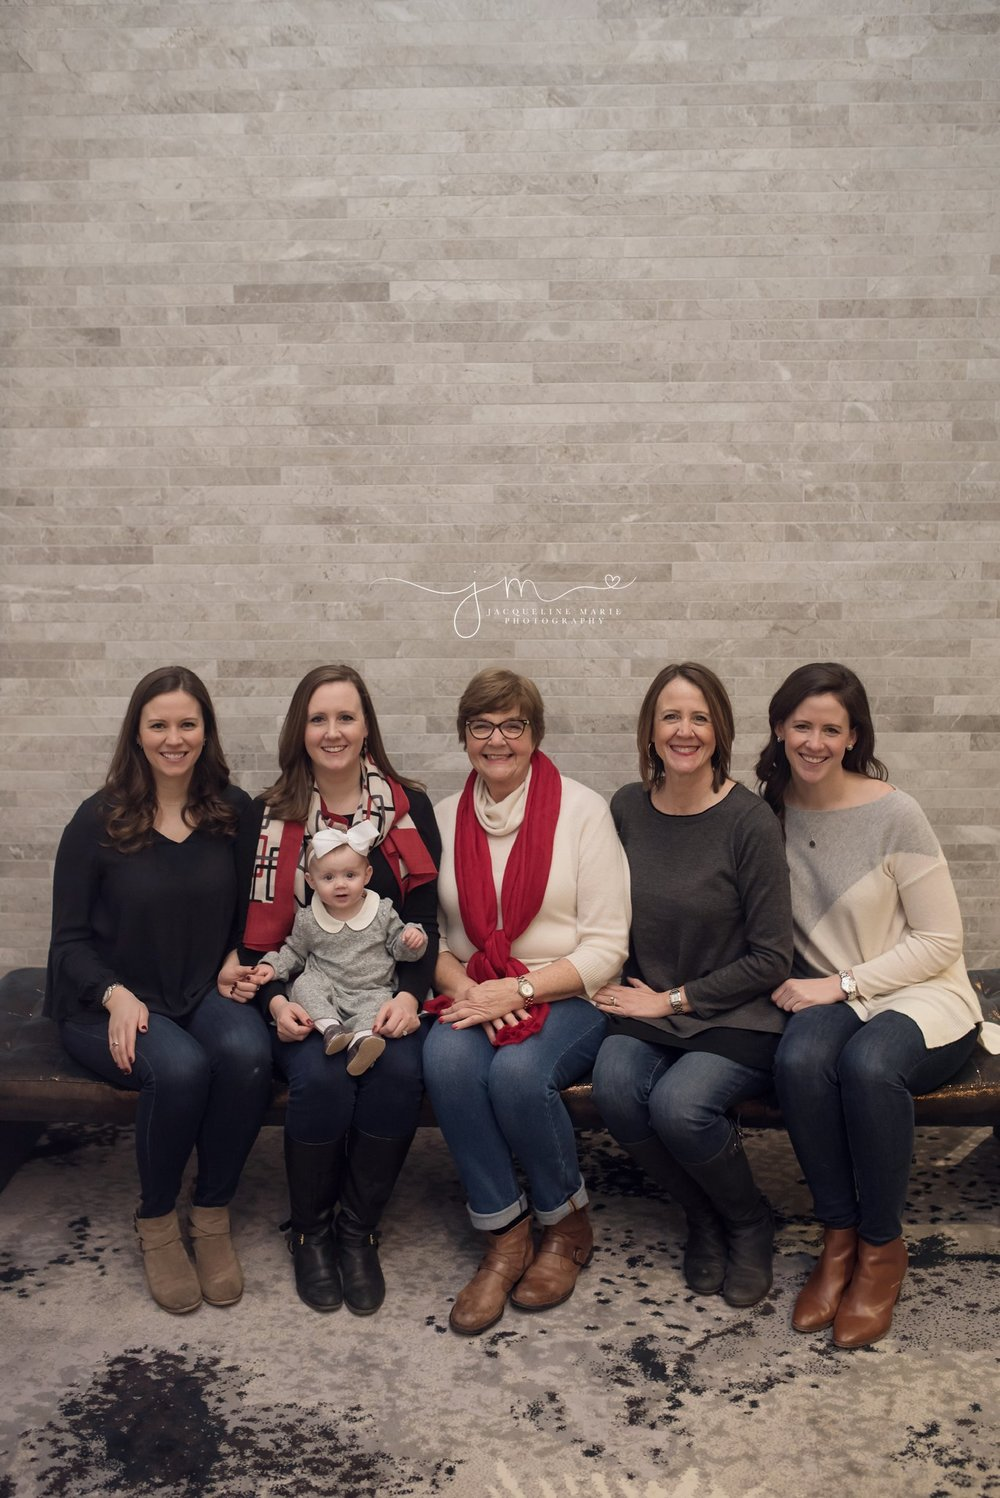 Granddaughters sit with great grandmother wearing jeans and sweaters inside Hilton Hotel in Columbus Ohio for family portraits